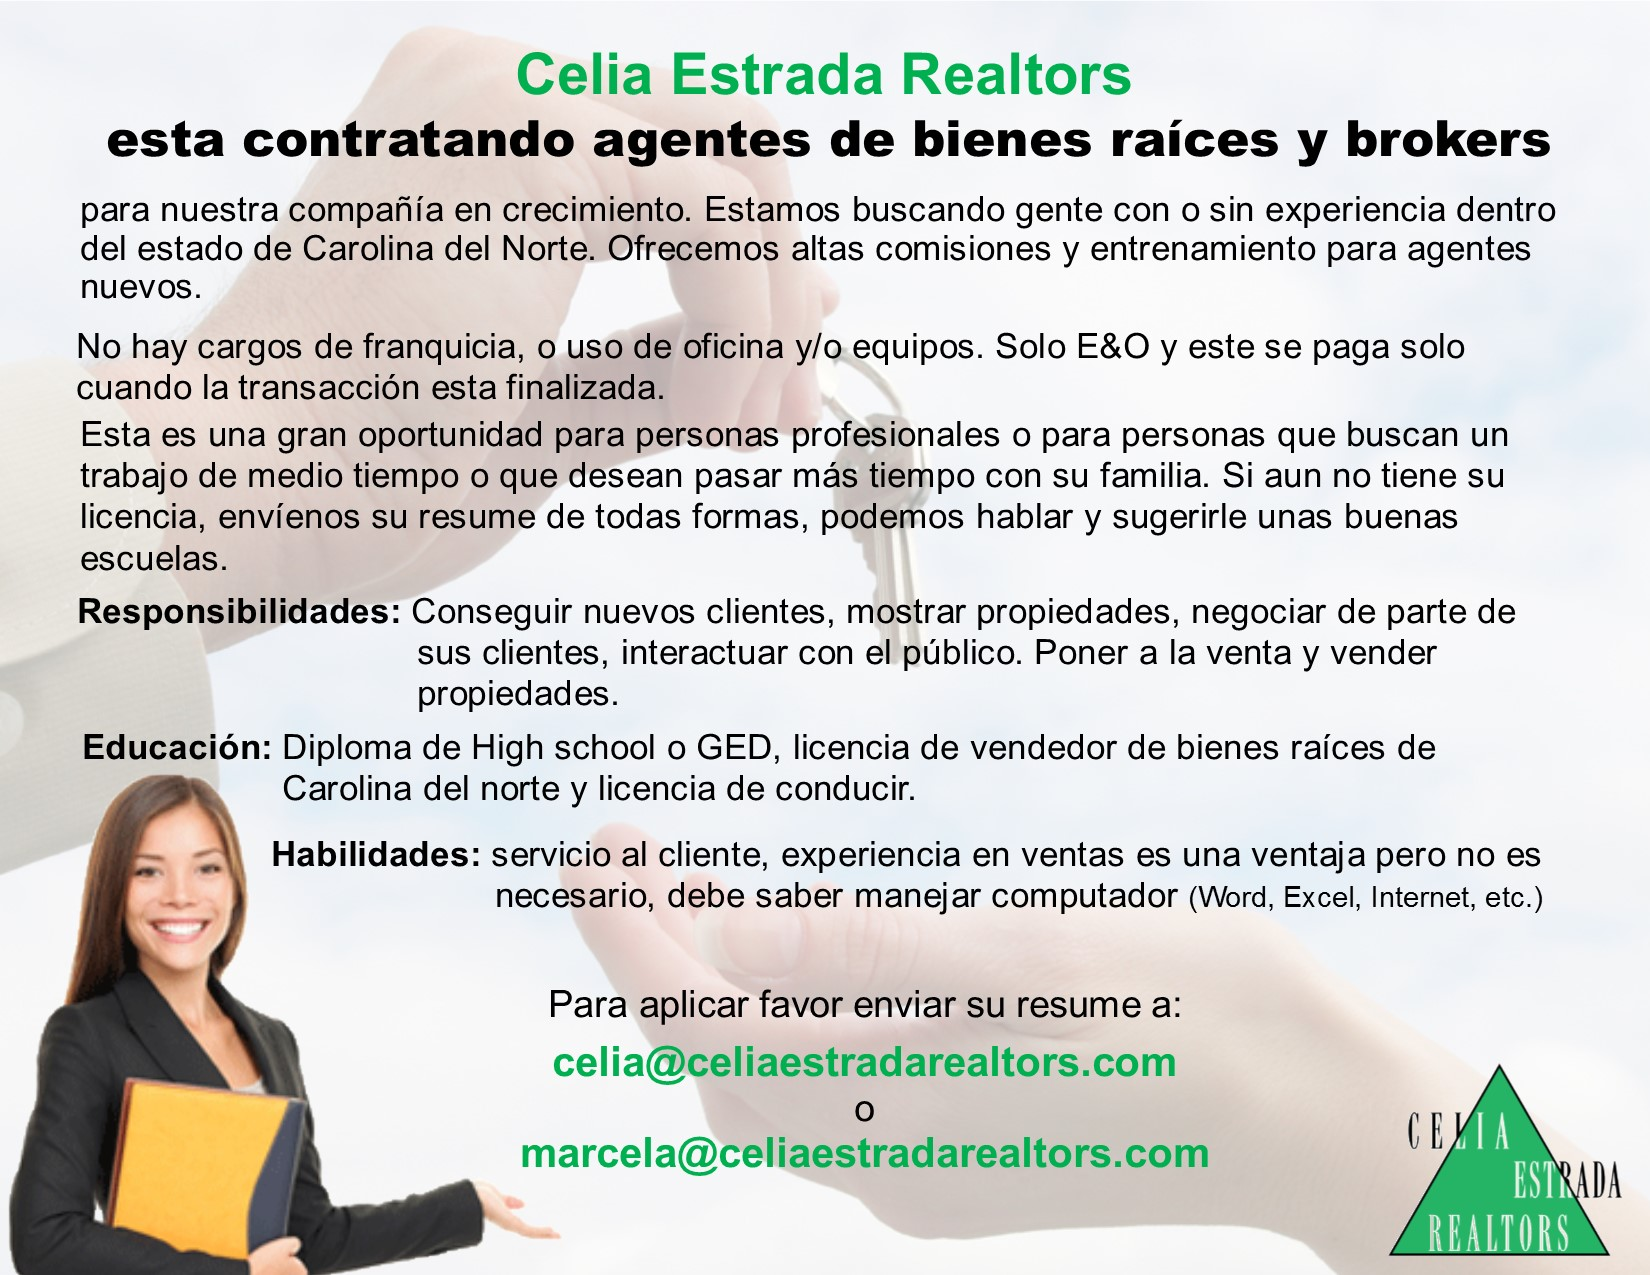 WE ARE HIRING!!! - ESTAMOS CONTRATANDO!!! - Celia Estrada Realtors